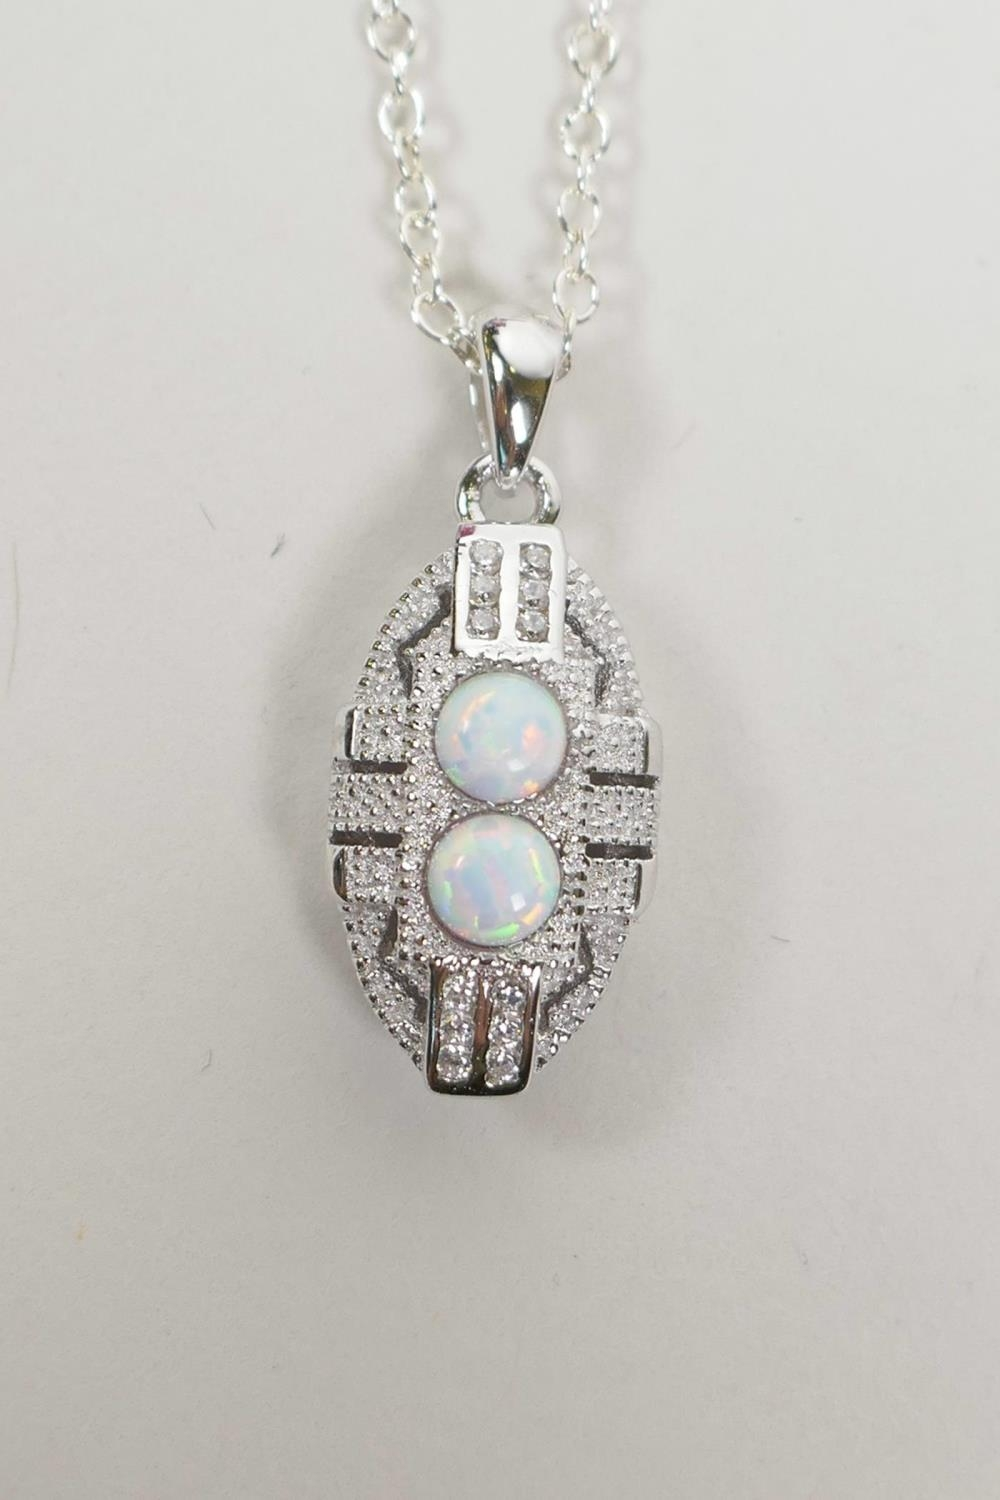 Silver 925 Art Deco Pendant Necklace with Cubic Zirconium and Opalite